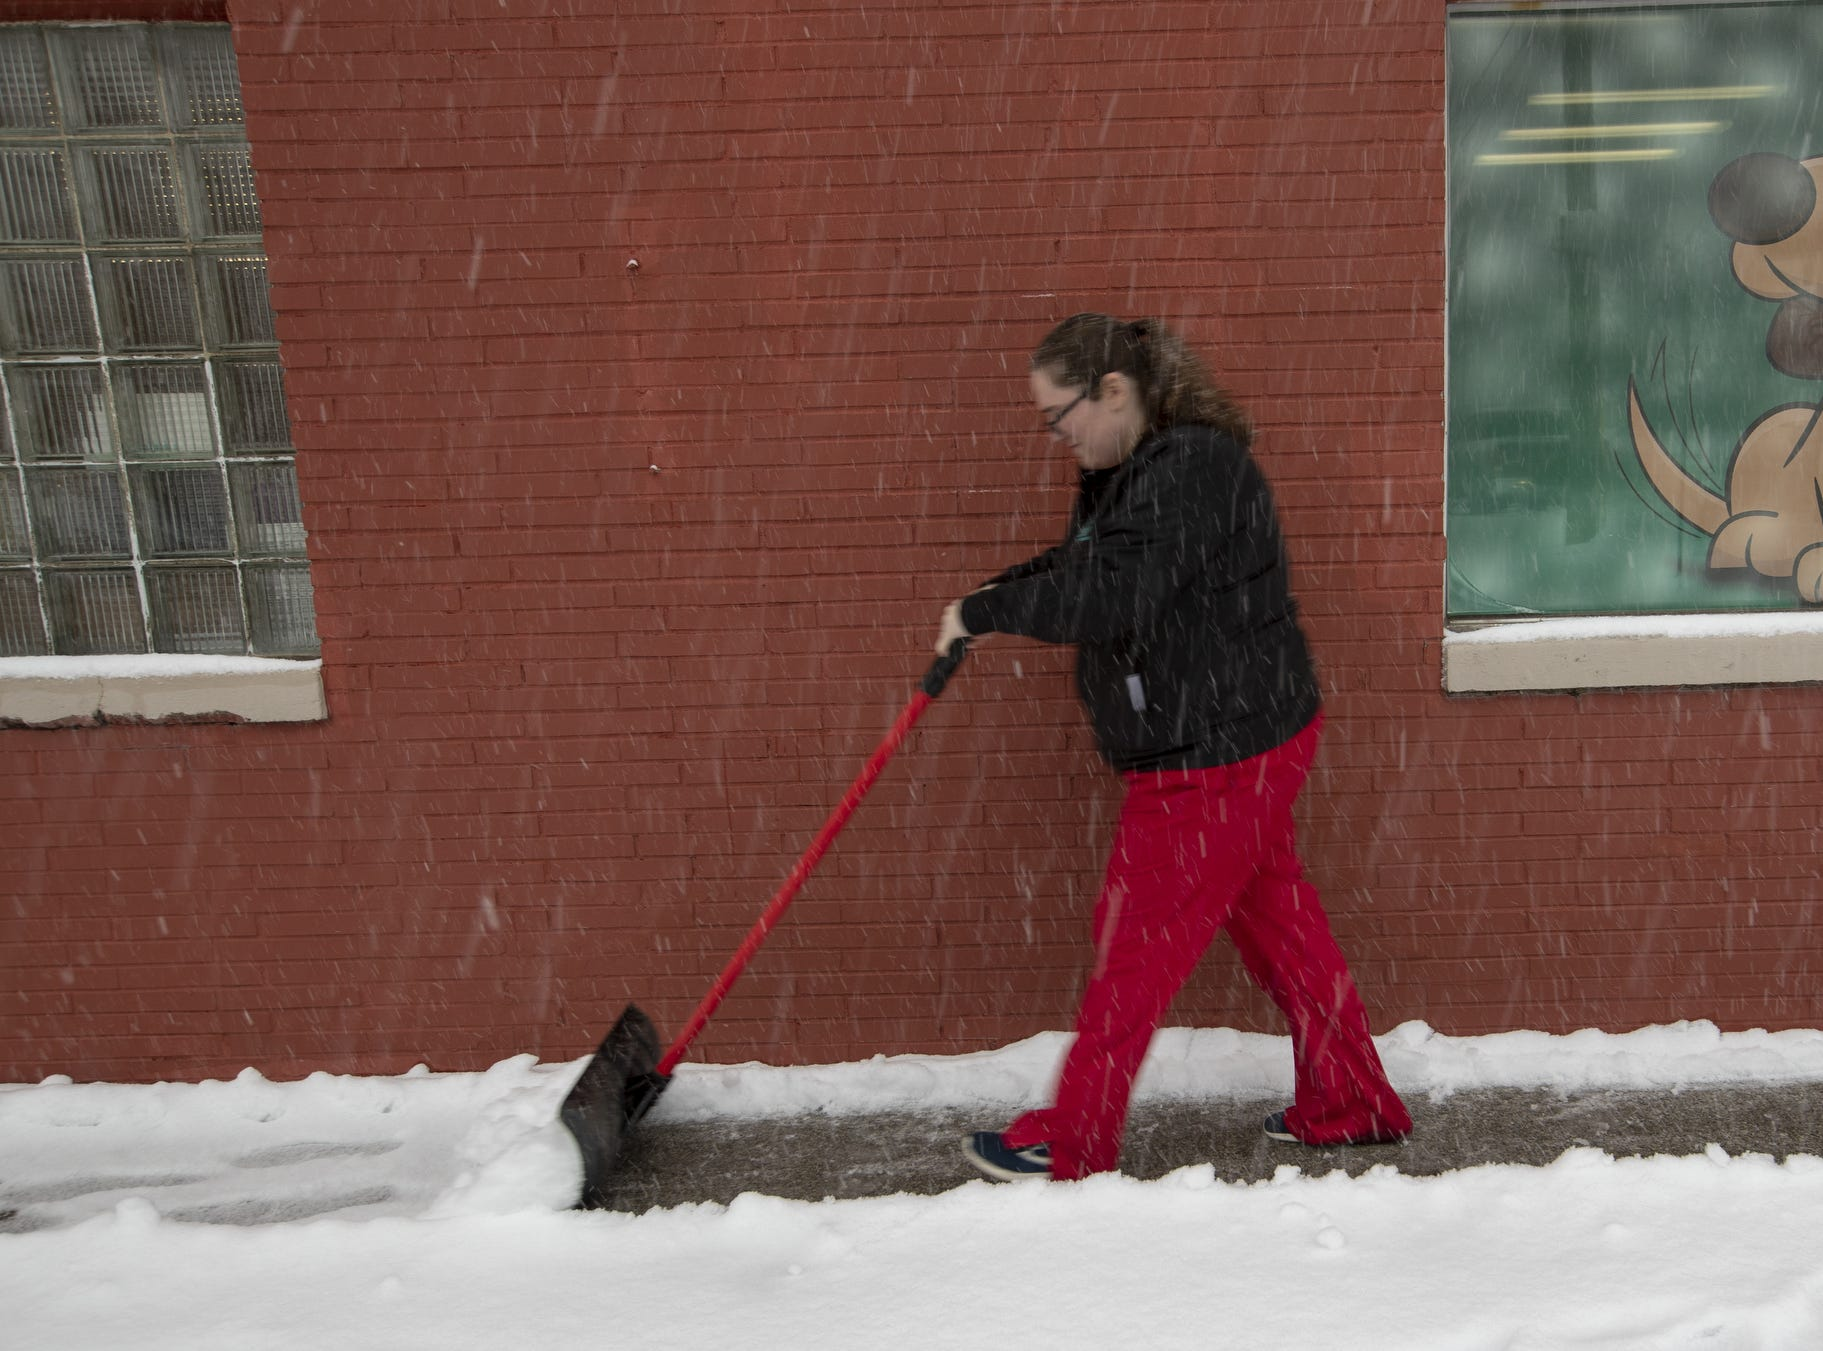 Emilea Bryum, a Veterinary Tech, shovels a walkway by Indy Paws during the morning hours, on a day that 5-7 inches of snow is expected to fall in Central Indiana, Indianapolis, Saturday, Jan. 12, 2019.